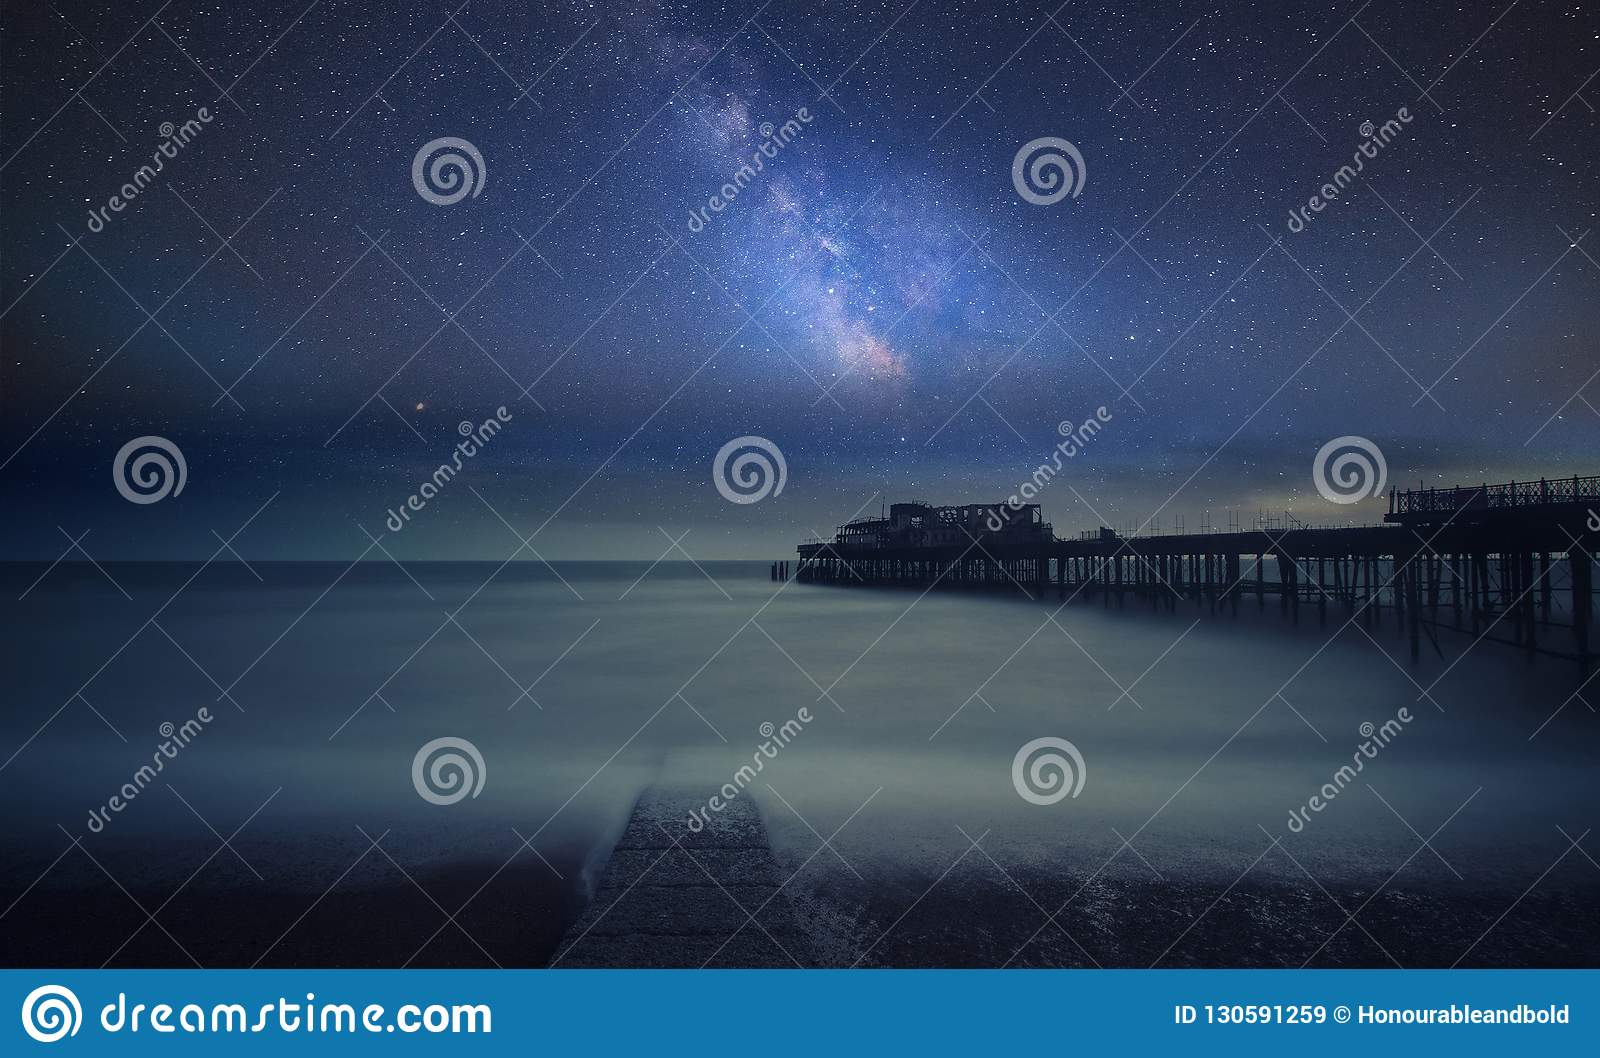 Vibrant Milky Way composite image over landscape of Long exposure of ruined pier at sea